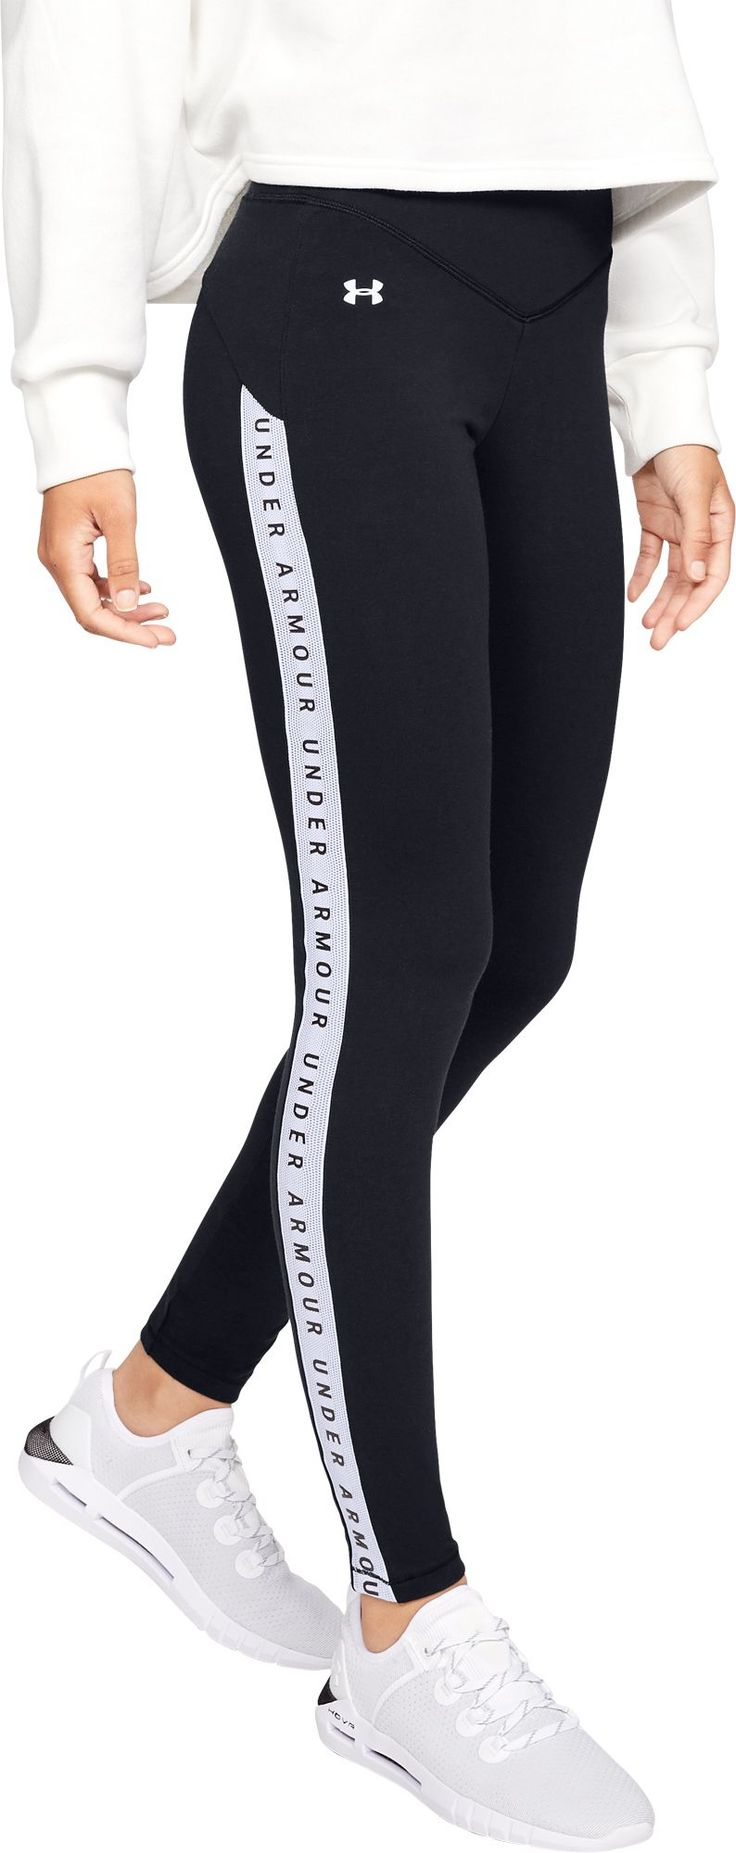 Under Armour Women's Taped Favorite Leggings, Size: XS, Black 6